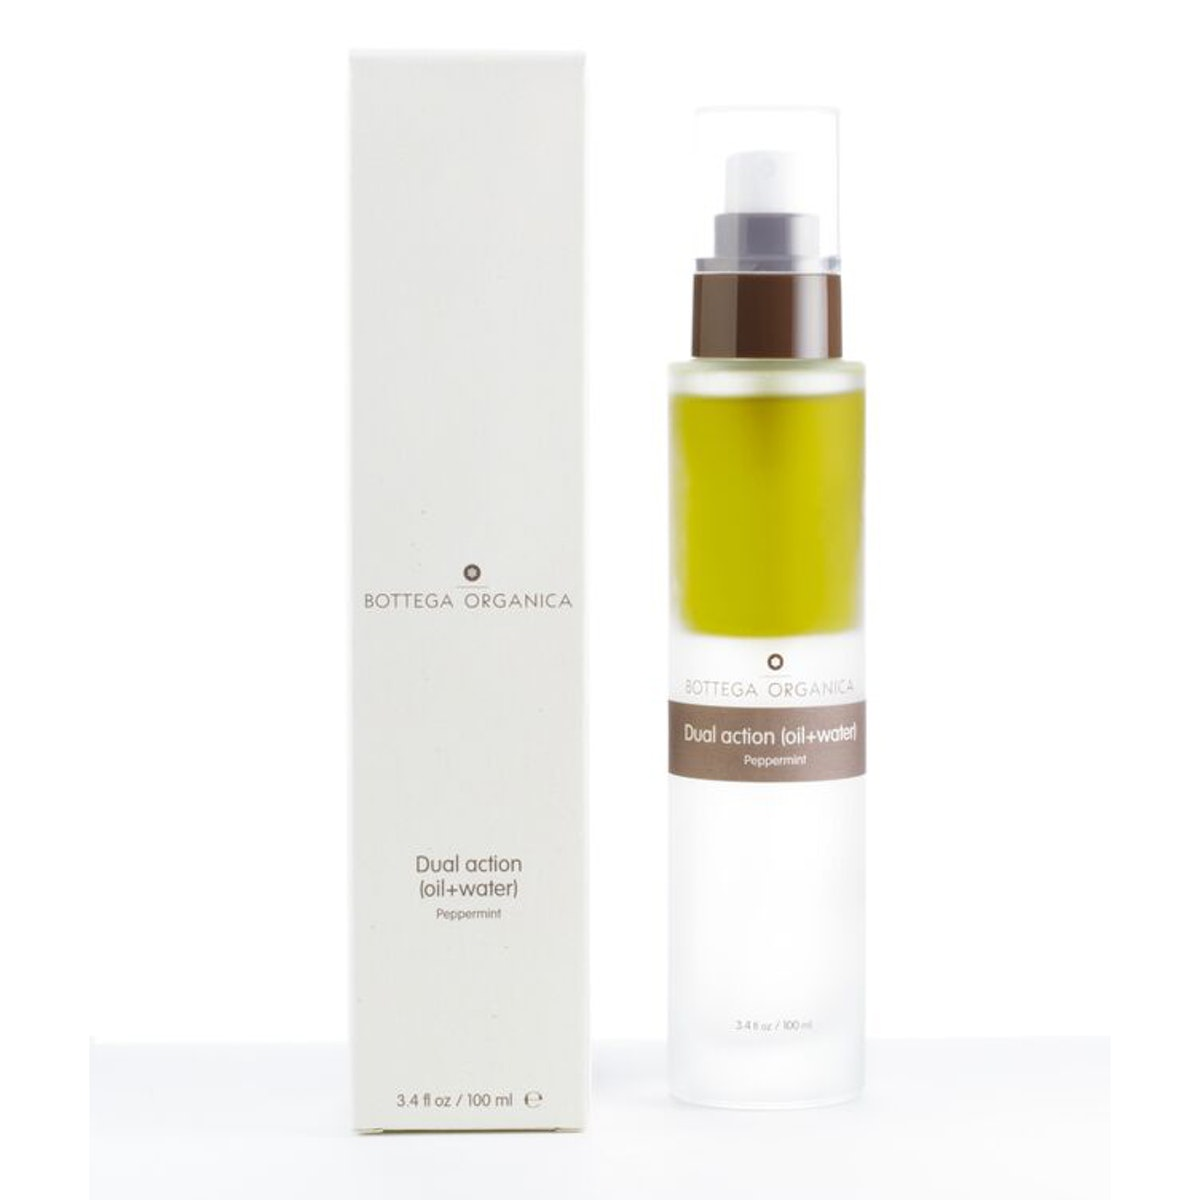 Bottega Organica Dual Action Oil and Water